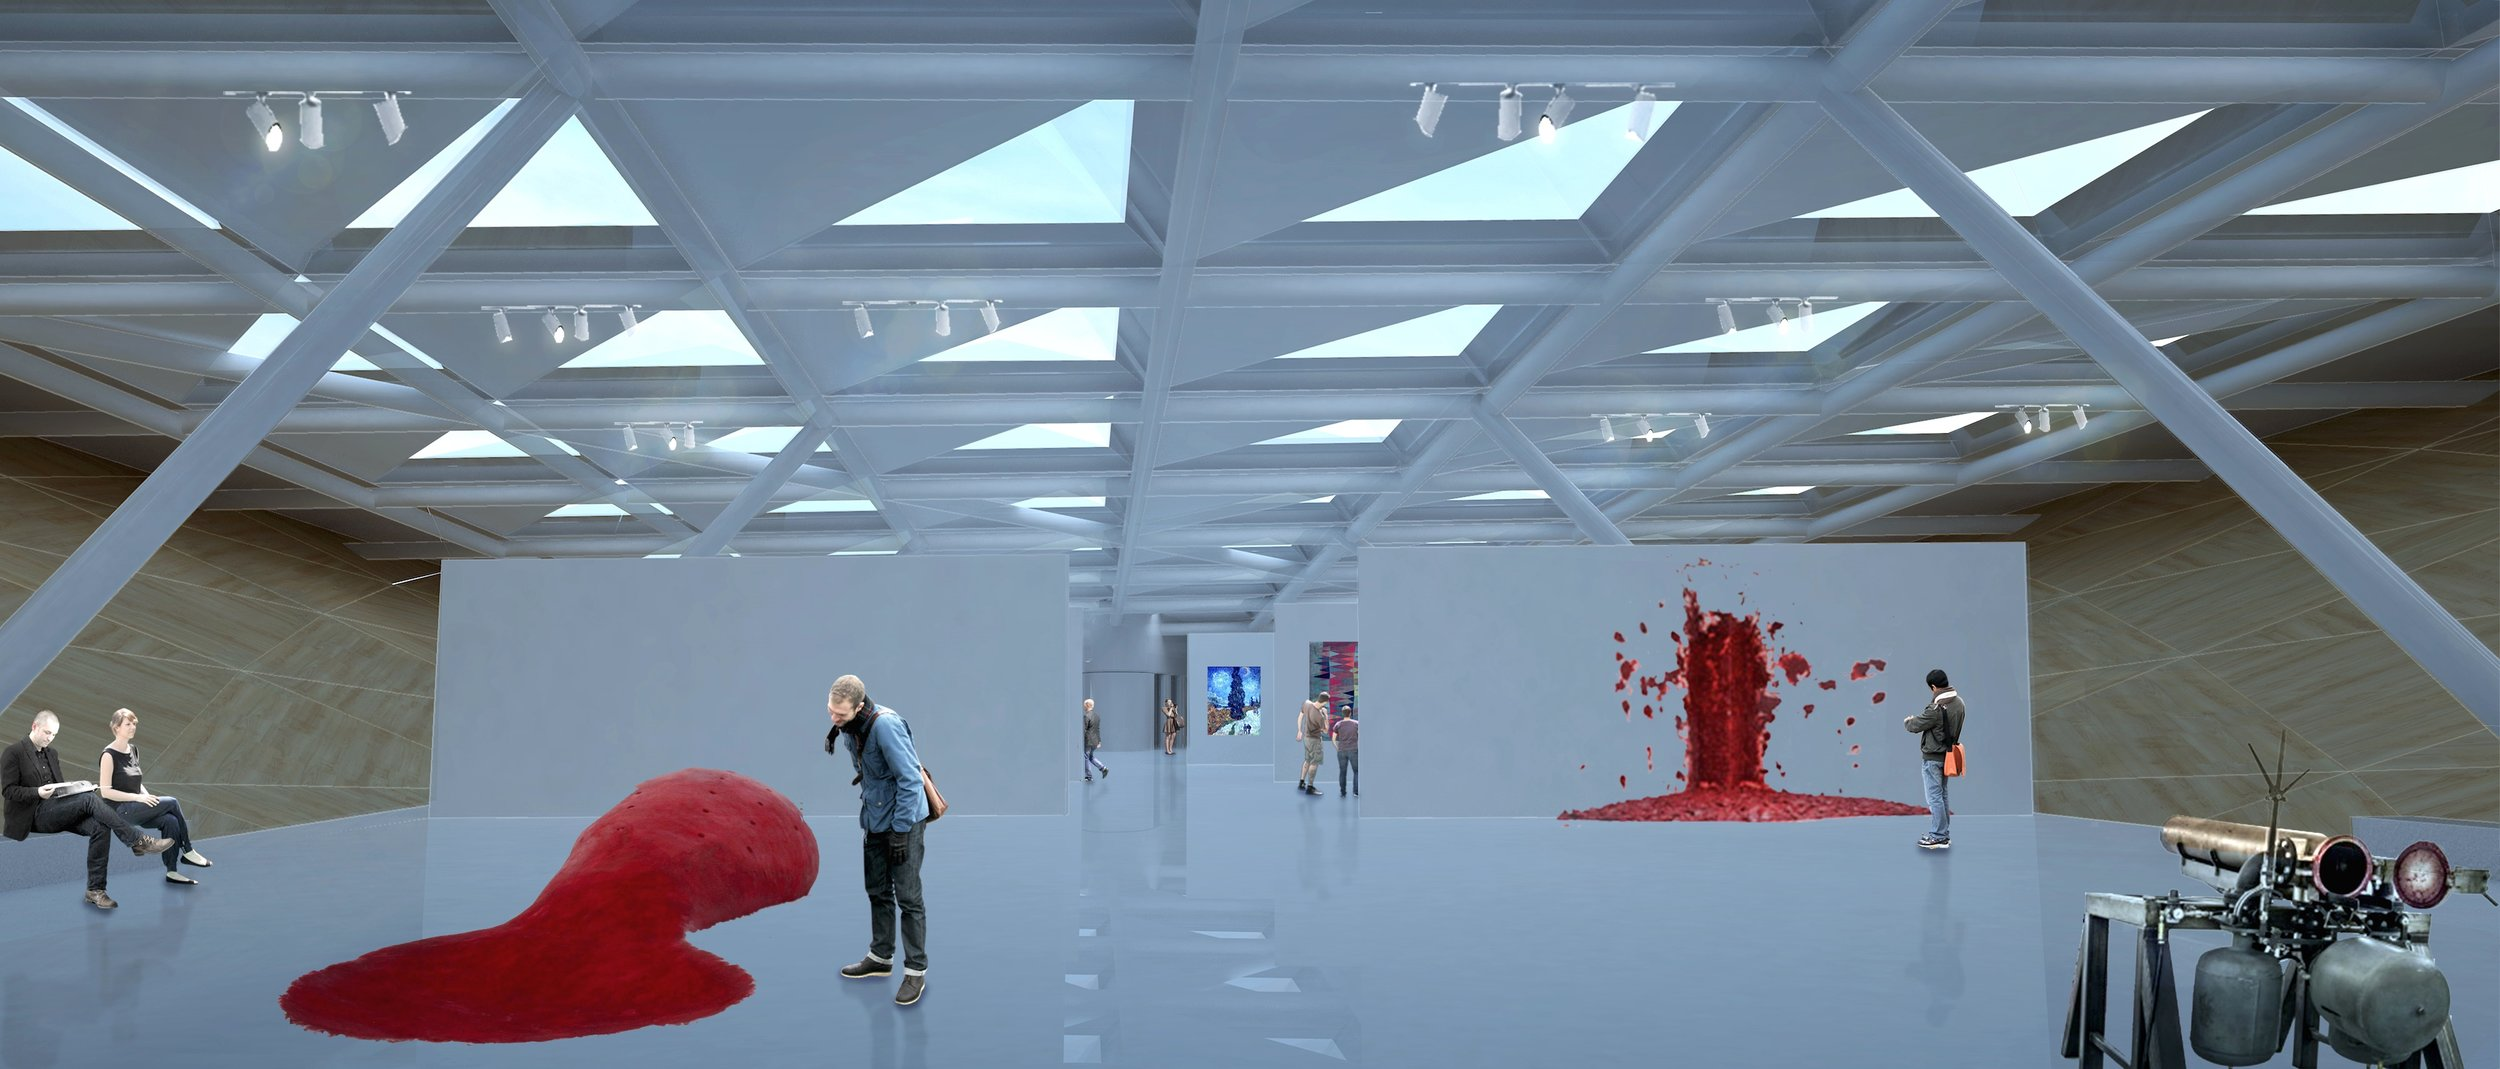 RENDER_exhibition.jpg